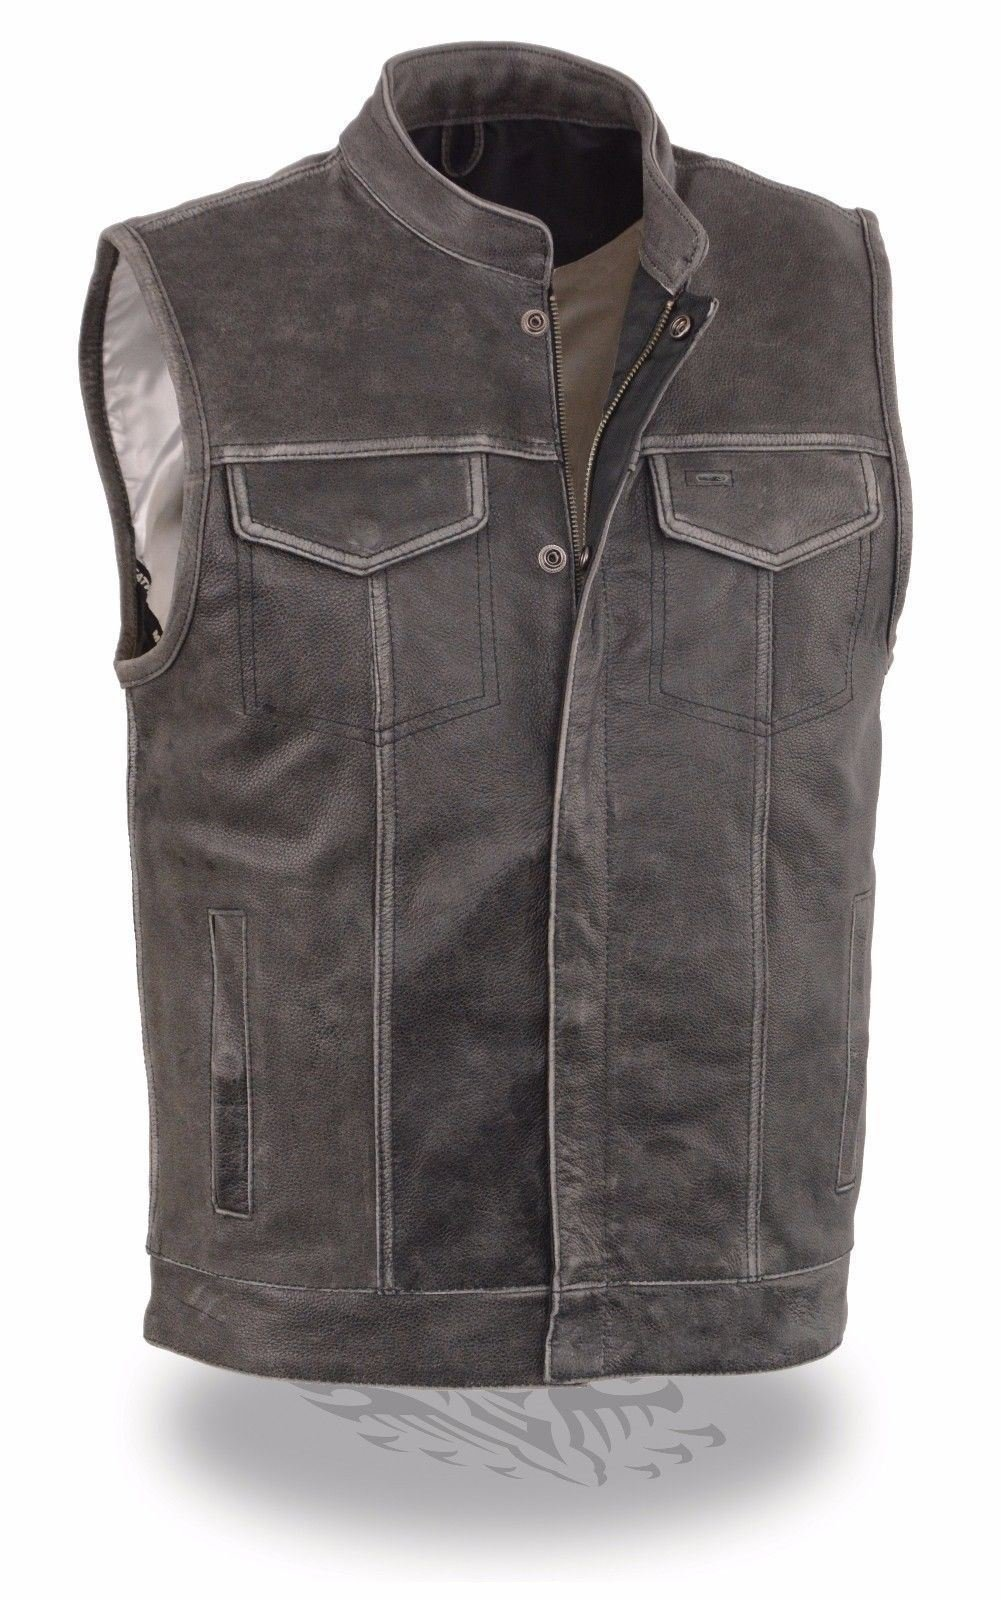 Men's Motorcycle Distressed Grey SOA Style Club Leather Vest W/Gun Pockets